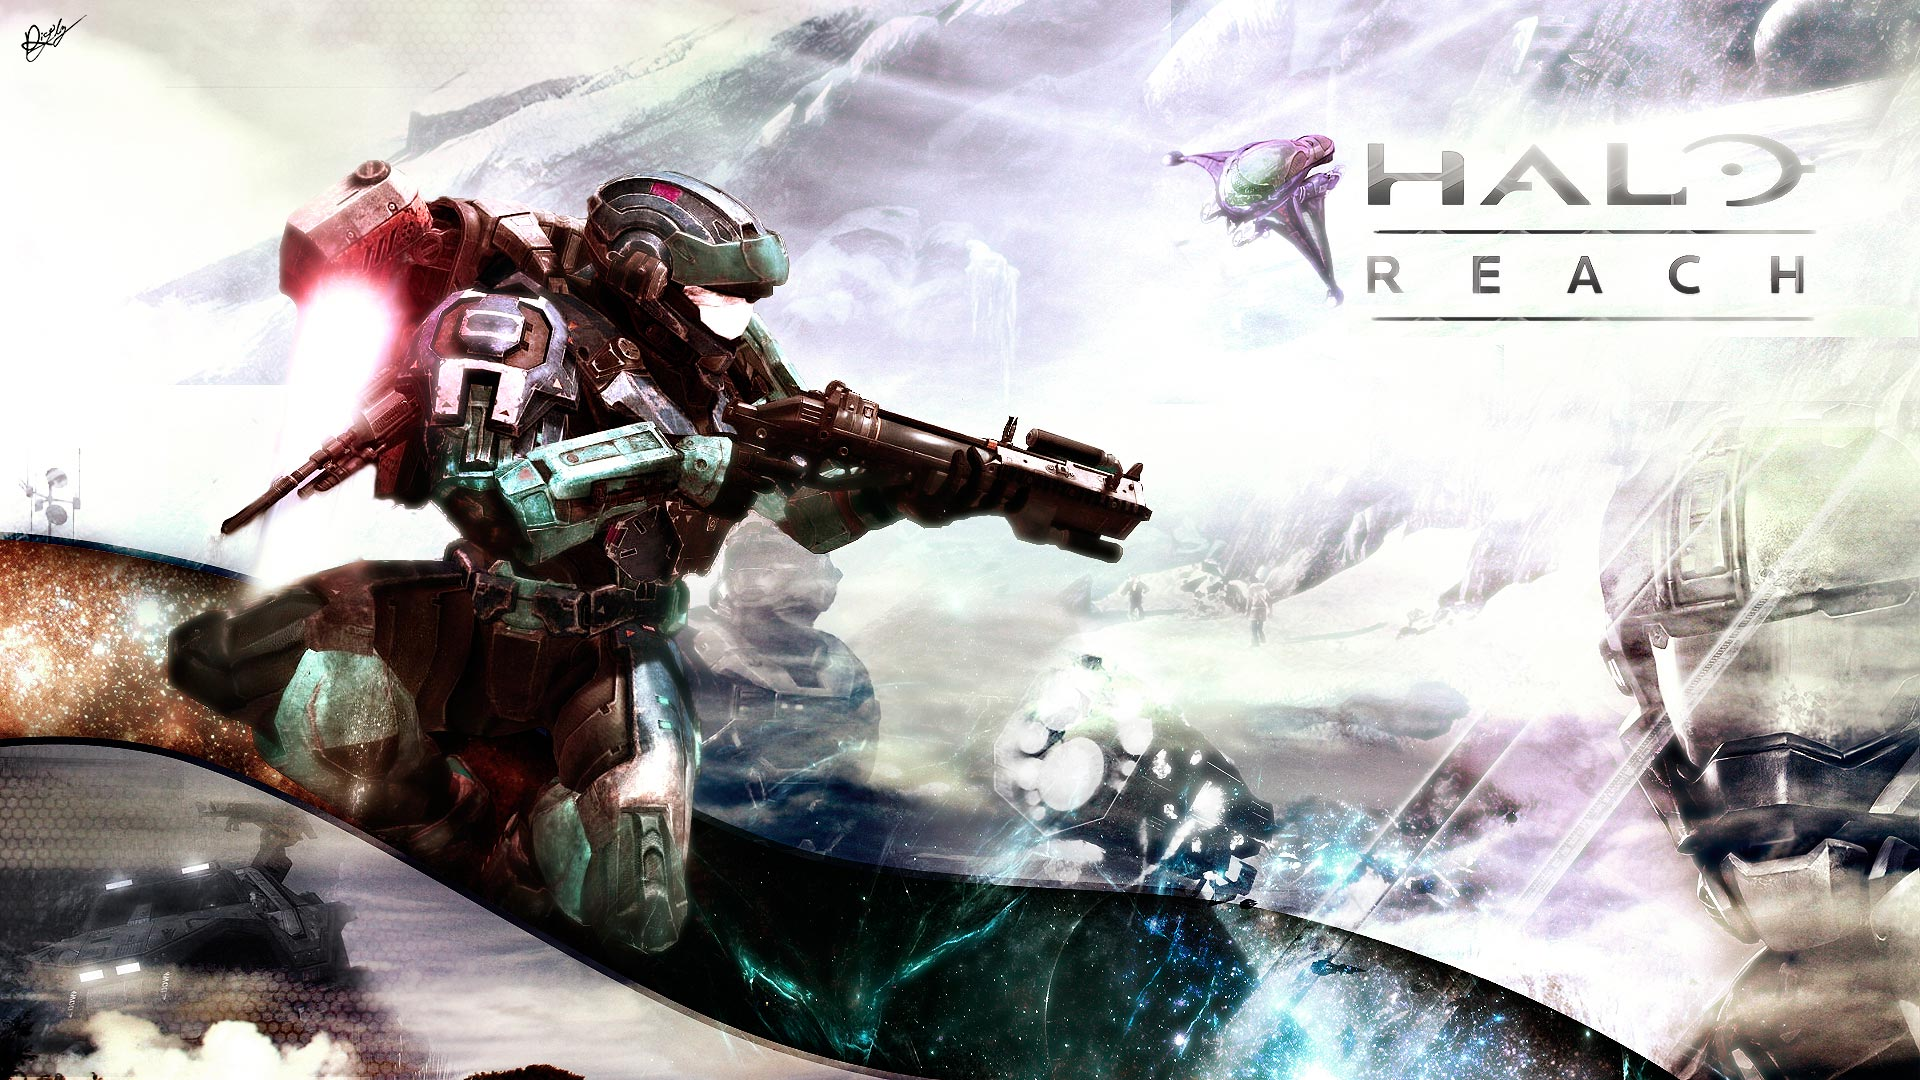 3 Halo: Reach HD Wallpapers | Backgrounds - Wallpaper Abyss